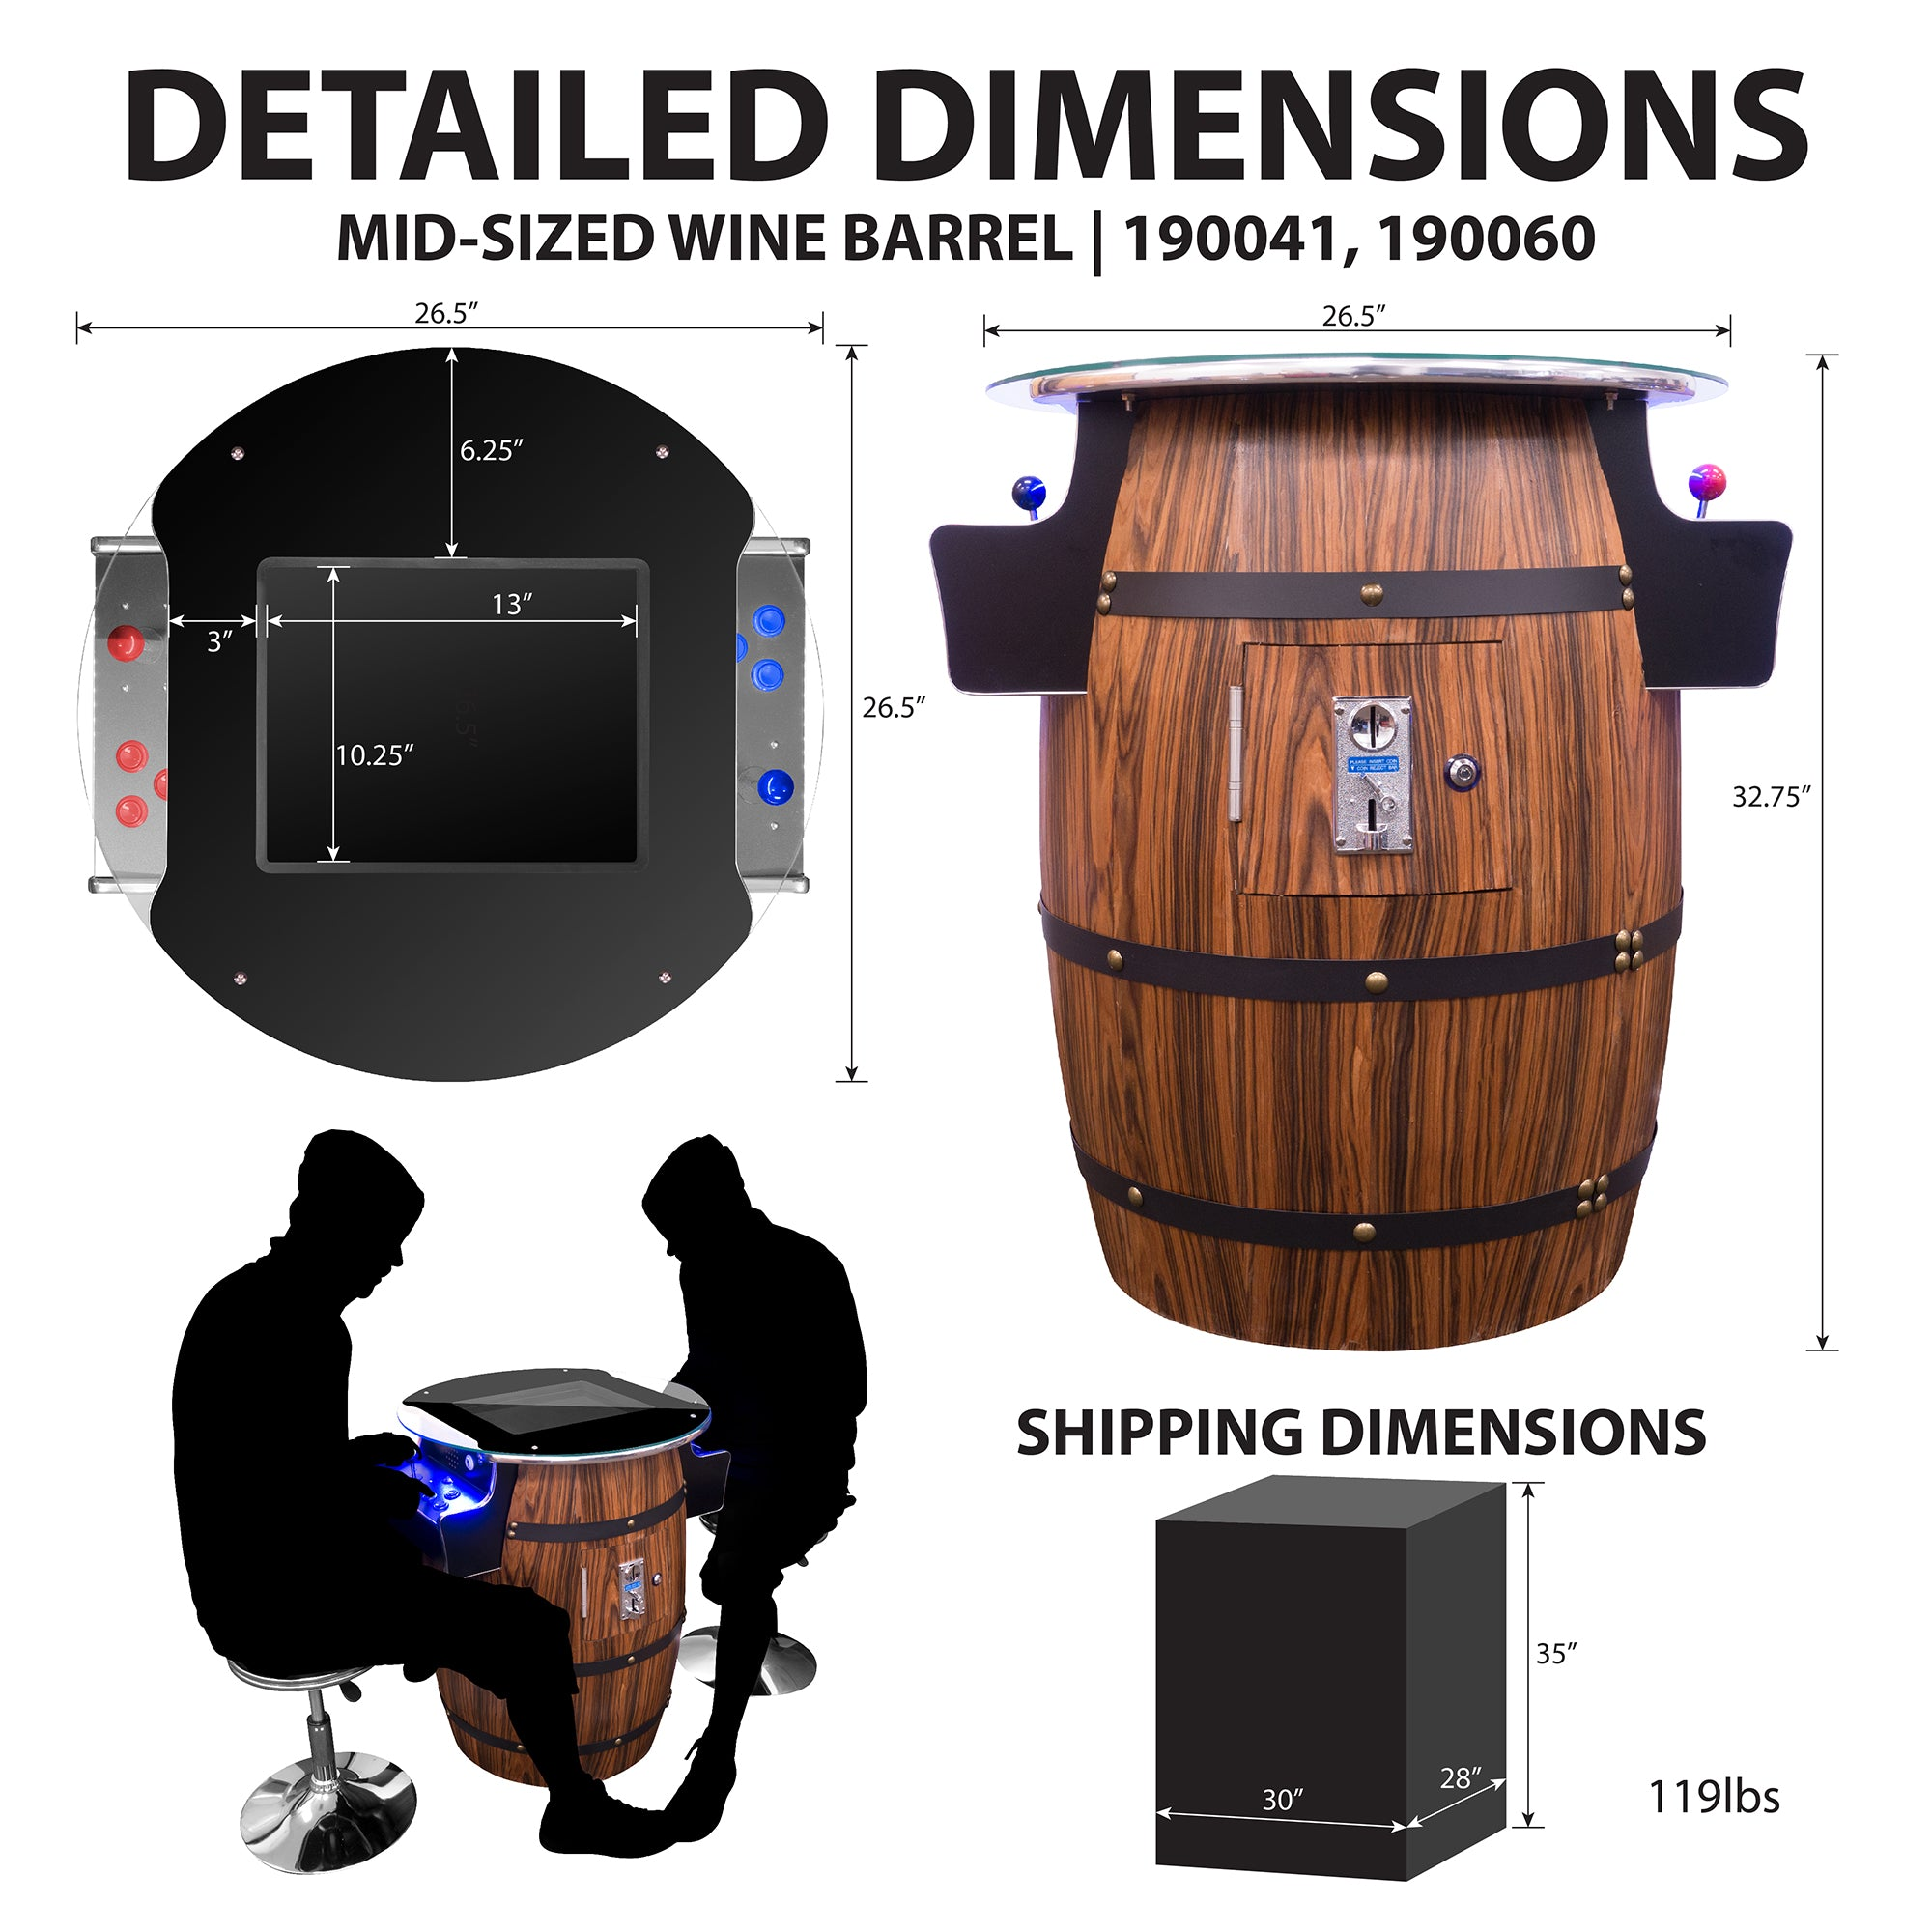 2 Player Mid-Size Wine Barrel Arcade Dimensions